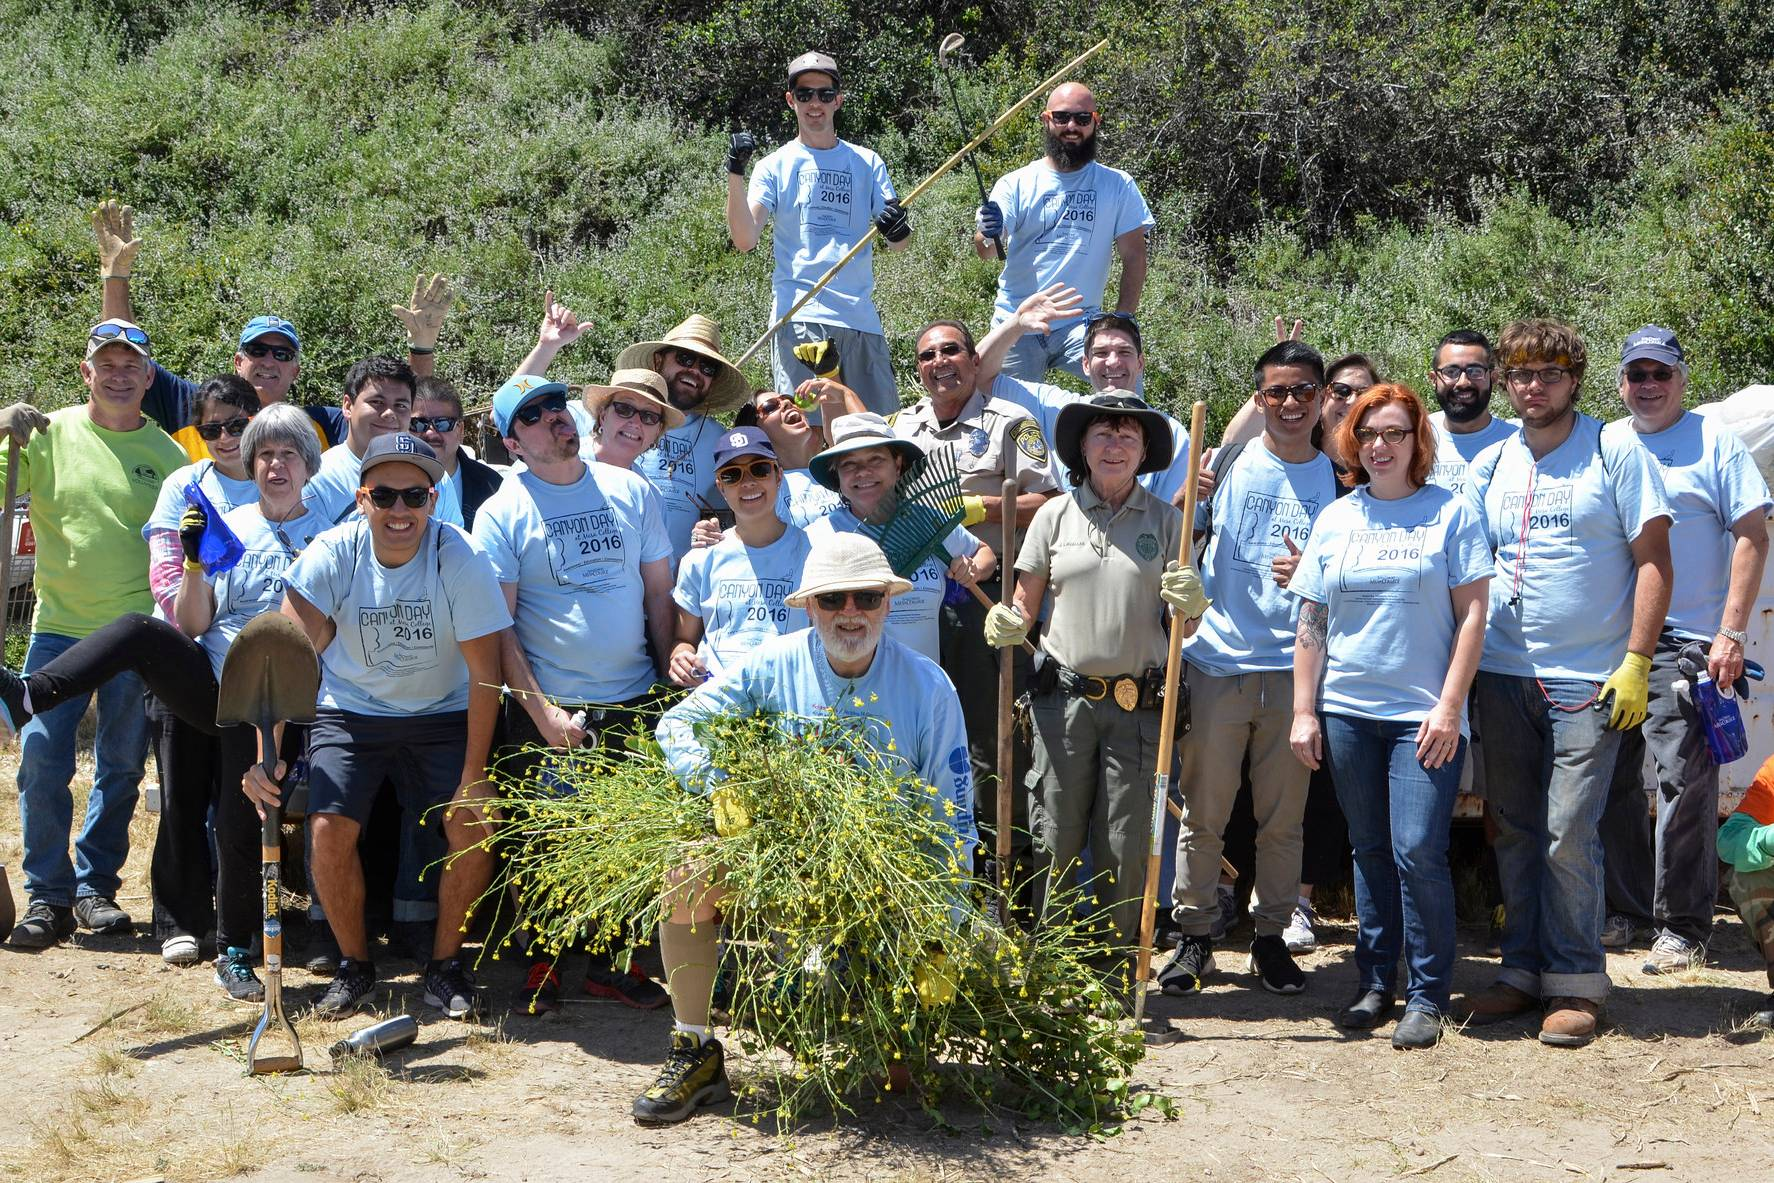 Volunteers from San Diego Mesa College and the surrounding community will be returning to Tecolote Canyon on April 22 for the annual Canyon Day cleanup event.